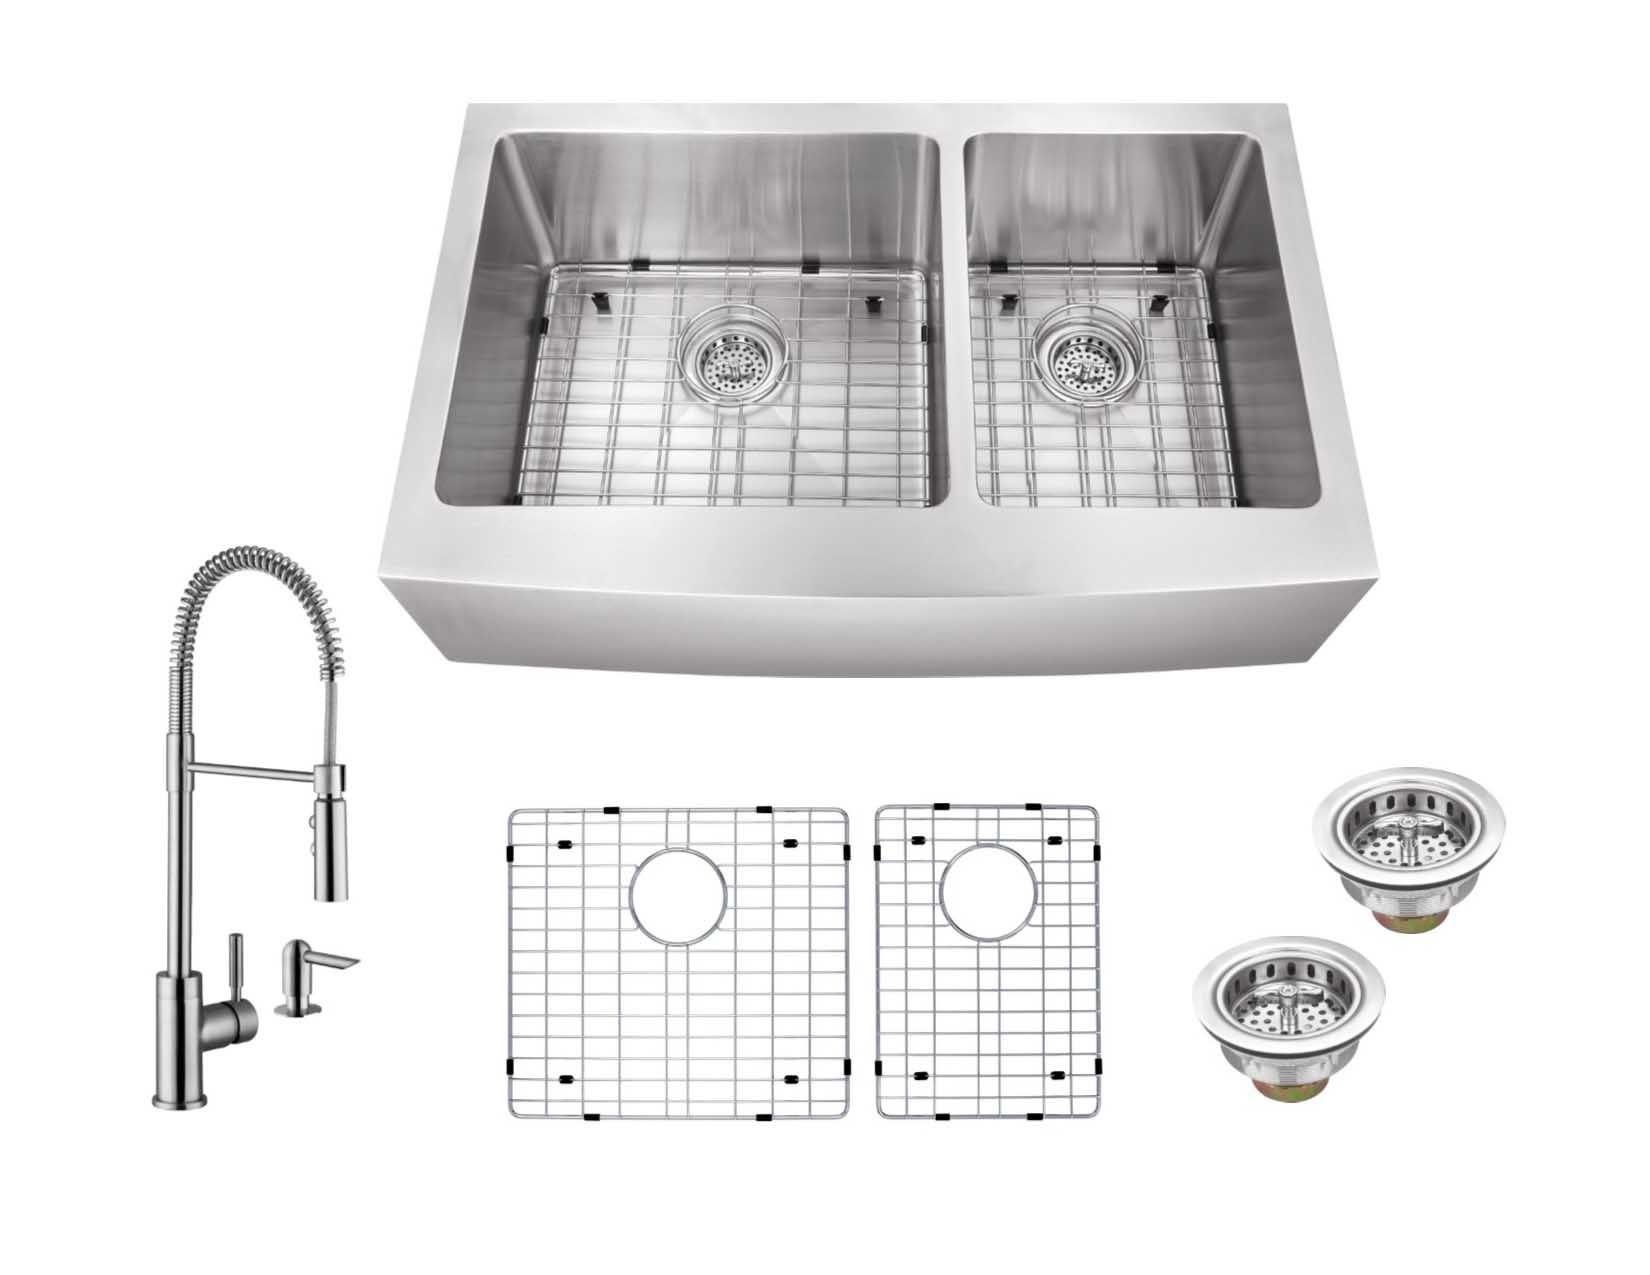 Cahaba Casc0099 35 7 8 X 20 3 4 16 Gauge Stainless Steel Apron Front Double Bowl 60 40 Kitchen Sink With Pull Down Industrial Style Kitchen Faucet And Soap Dispenser Pull Out Kitchen Faucet Stainless Steel Faucets Kitchen Styling